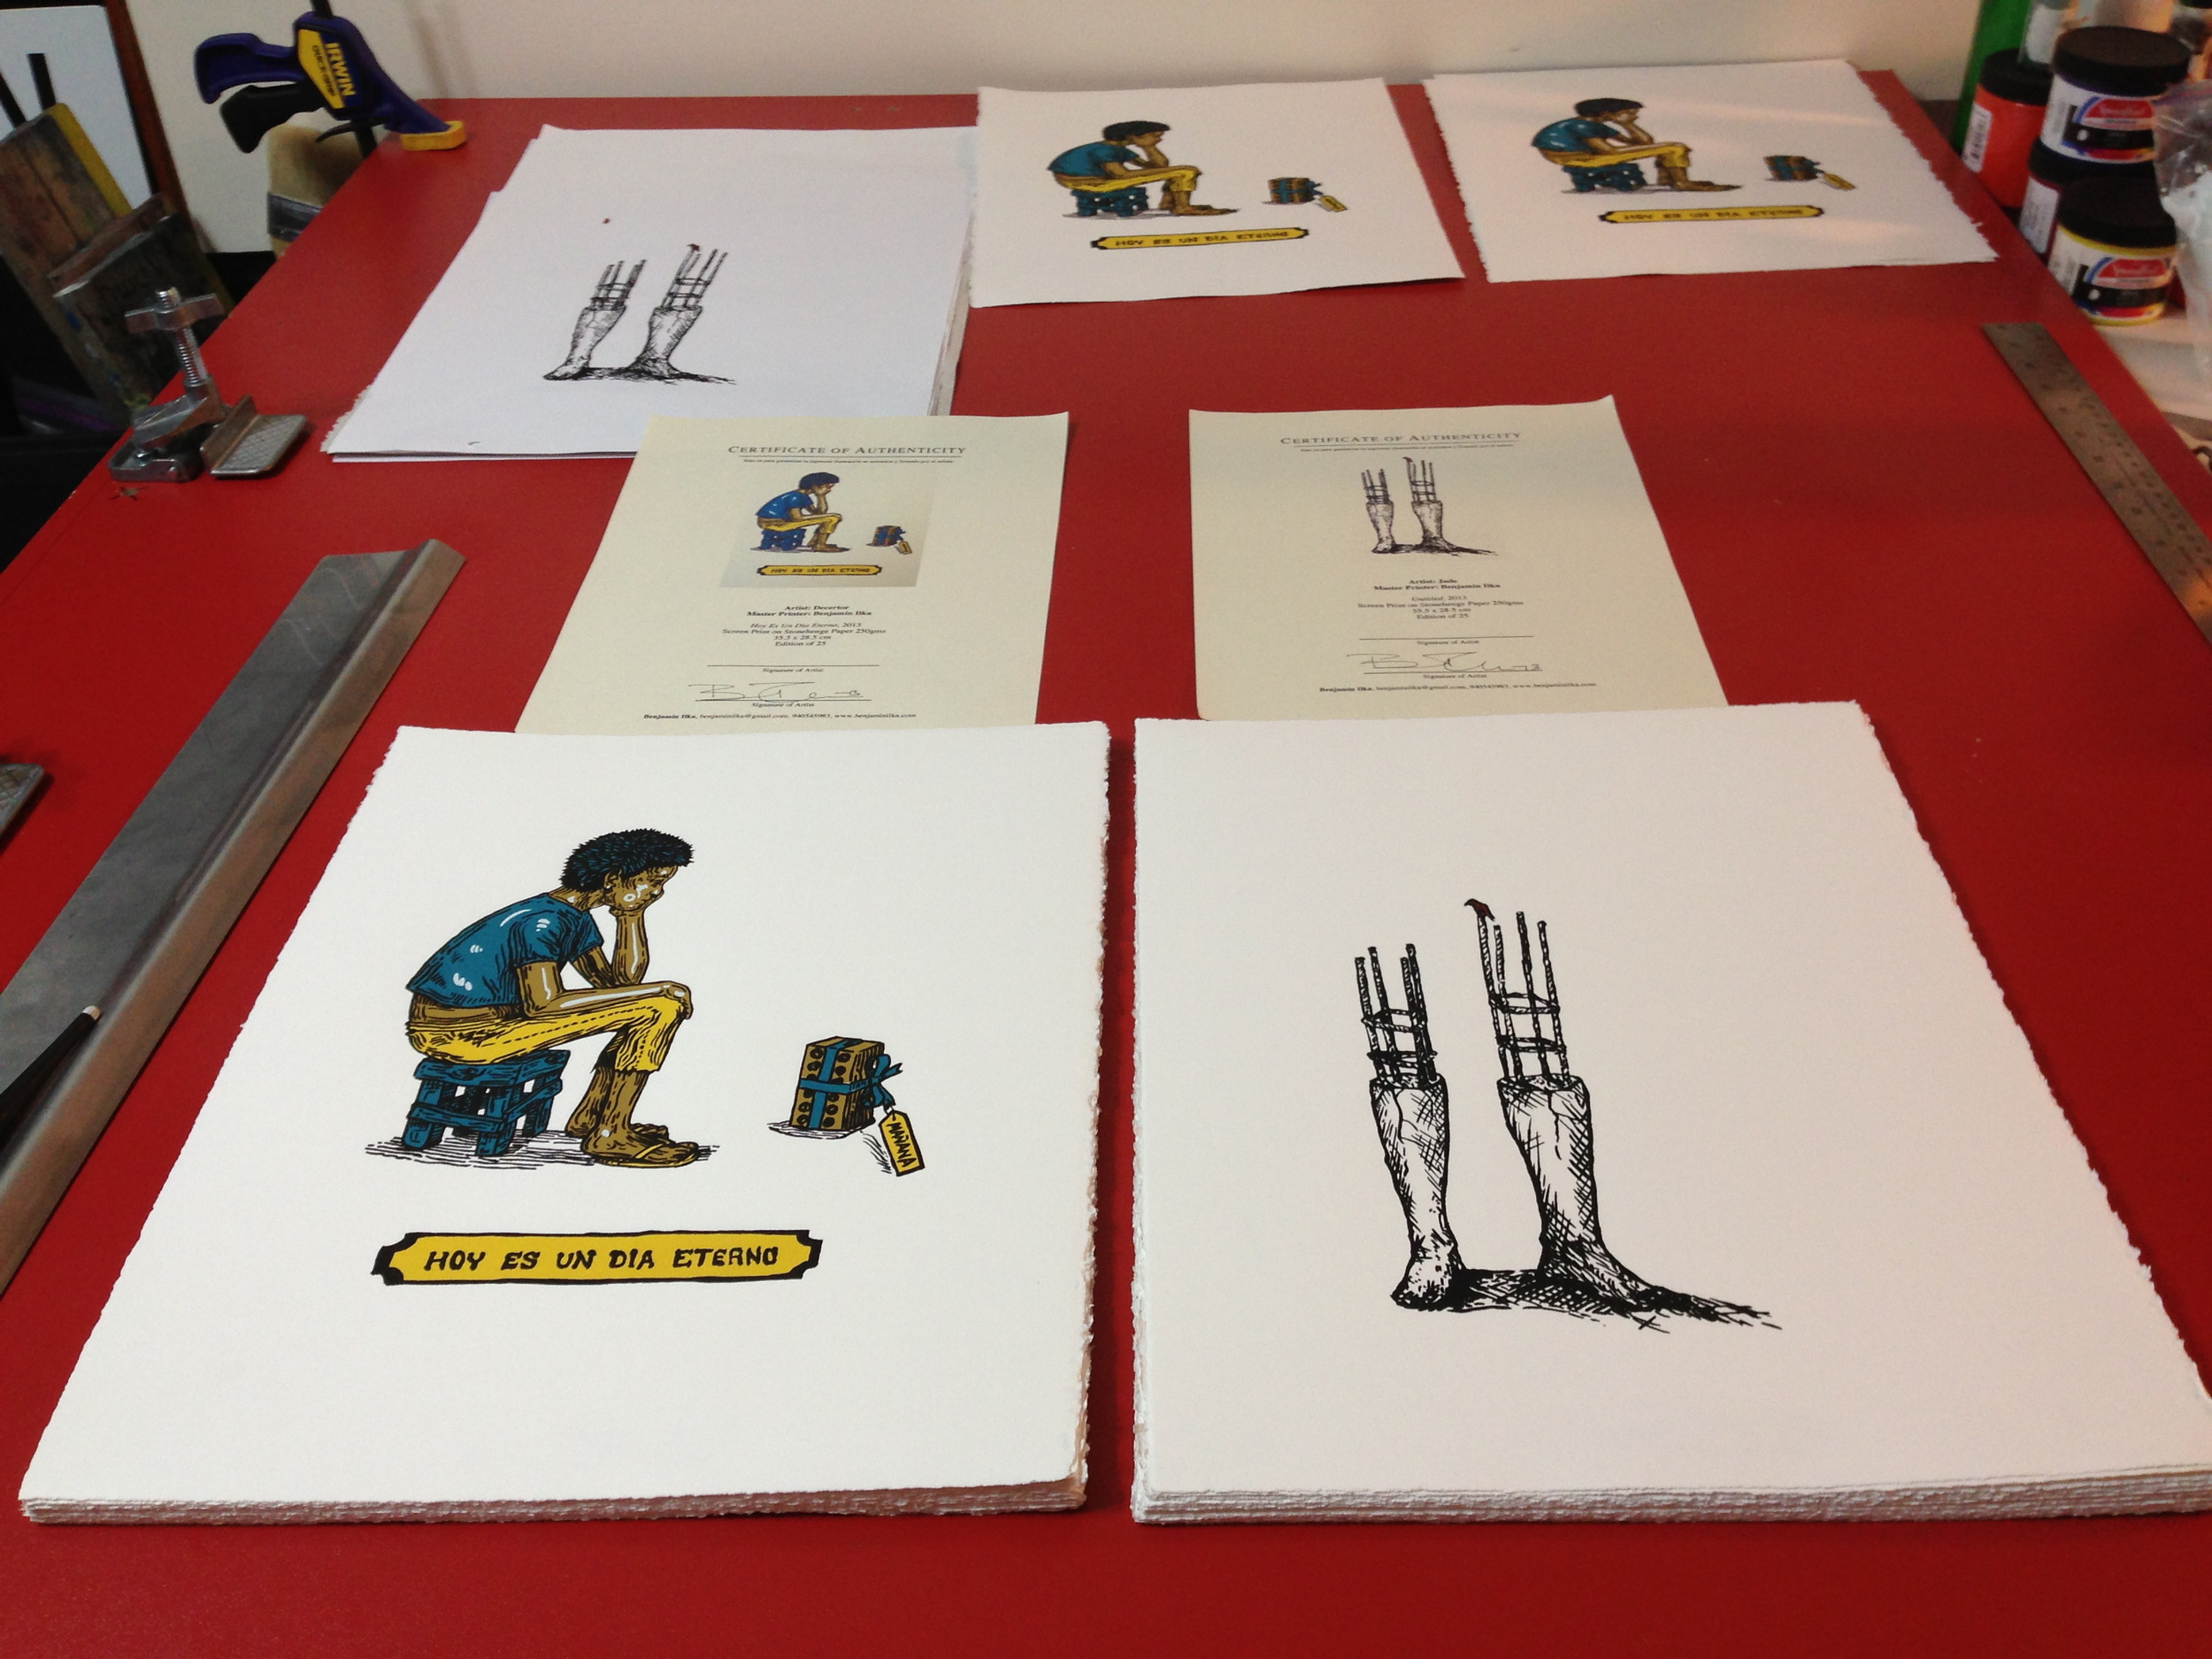 Two editions of 25 prints each